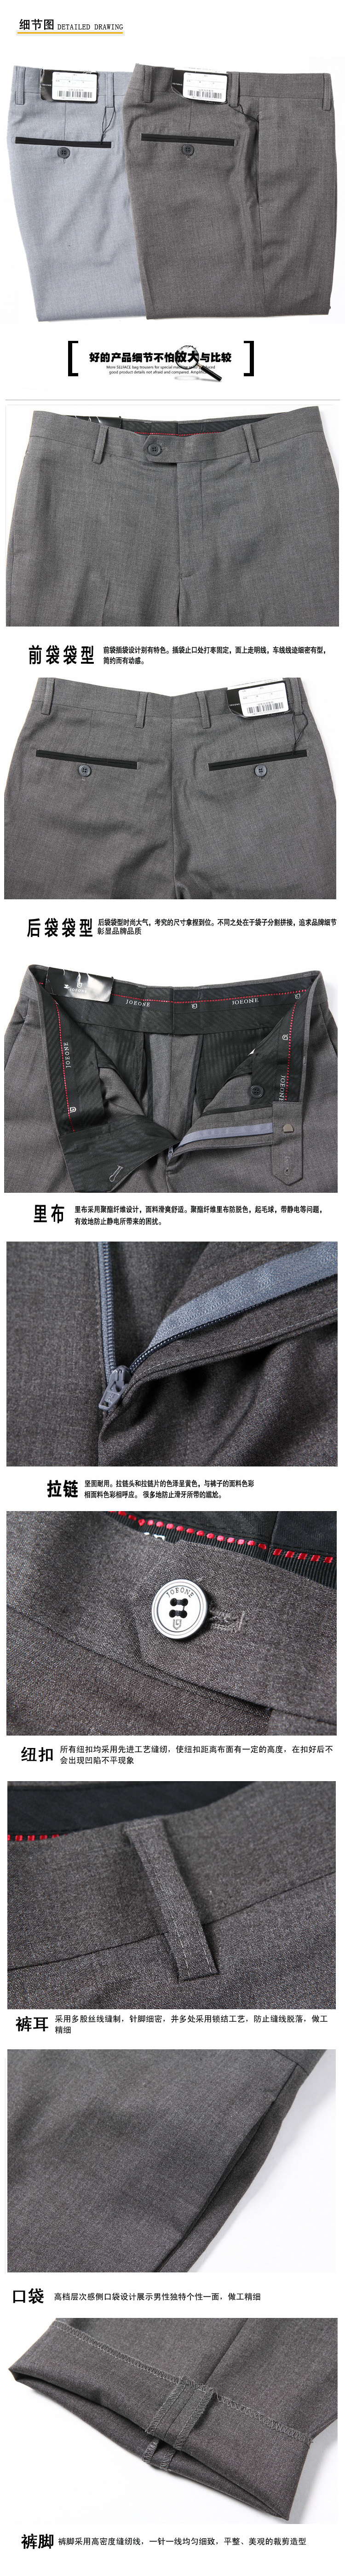 England summer the thin section Joeone Men Genuine Slim trousers men's business suits DP Straight Wei pants